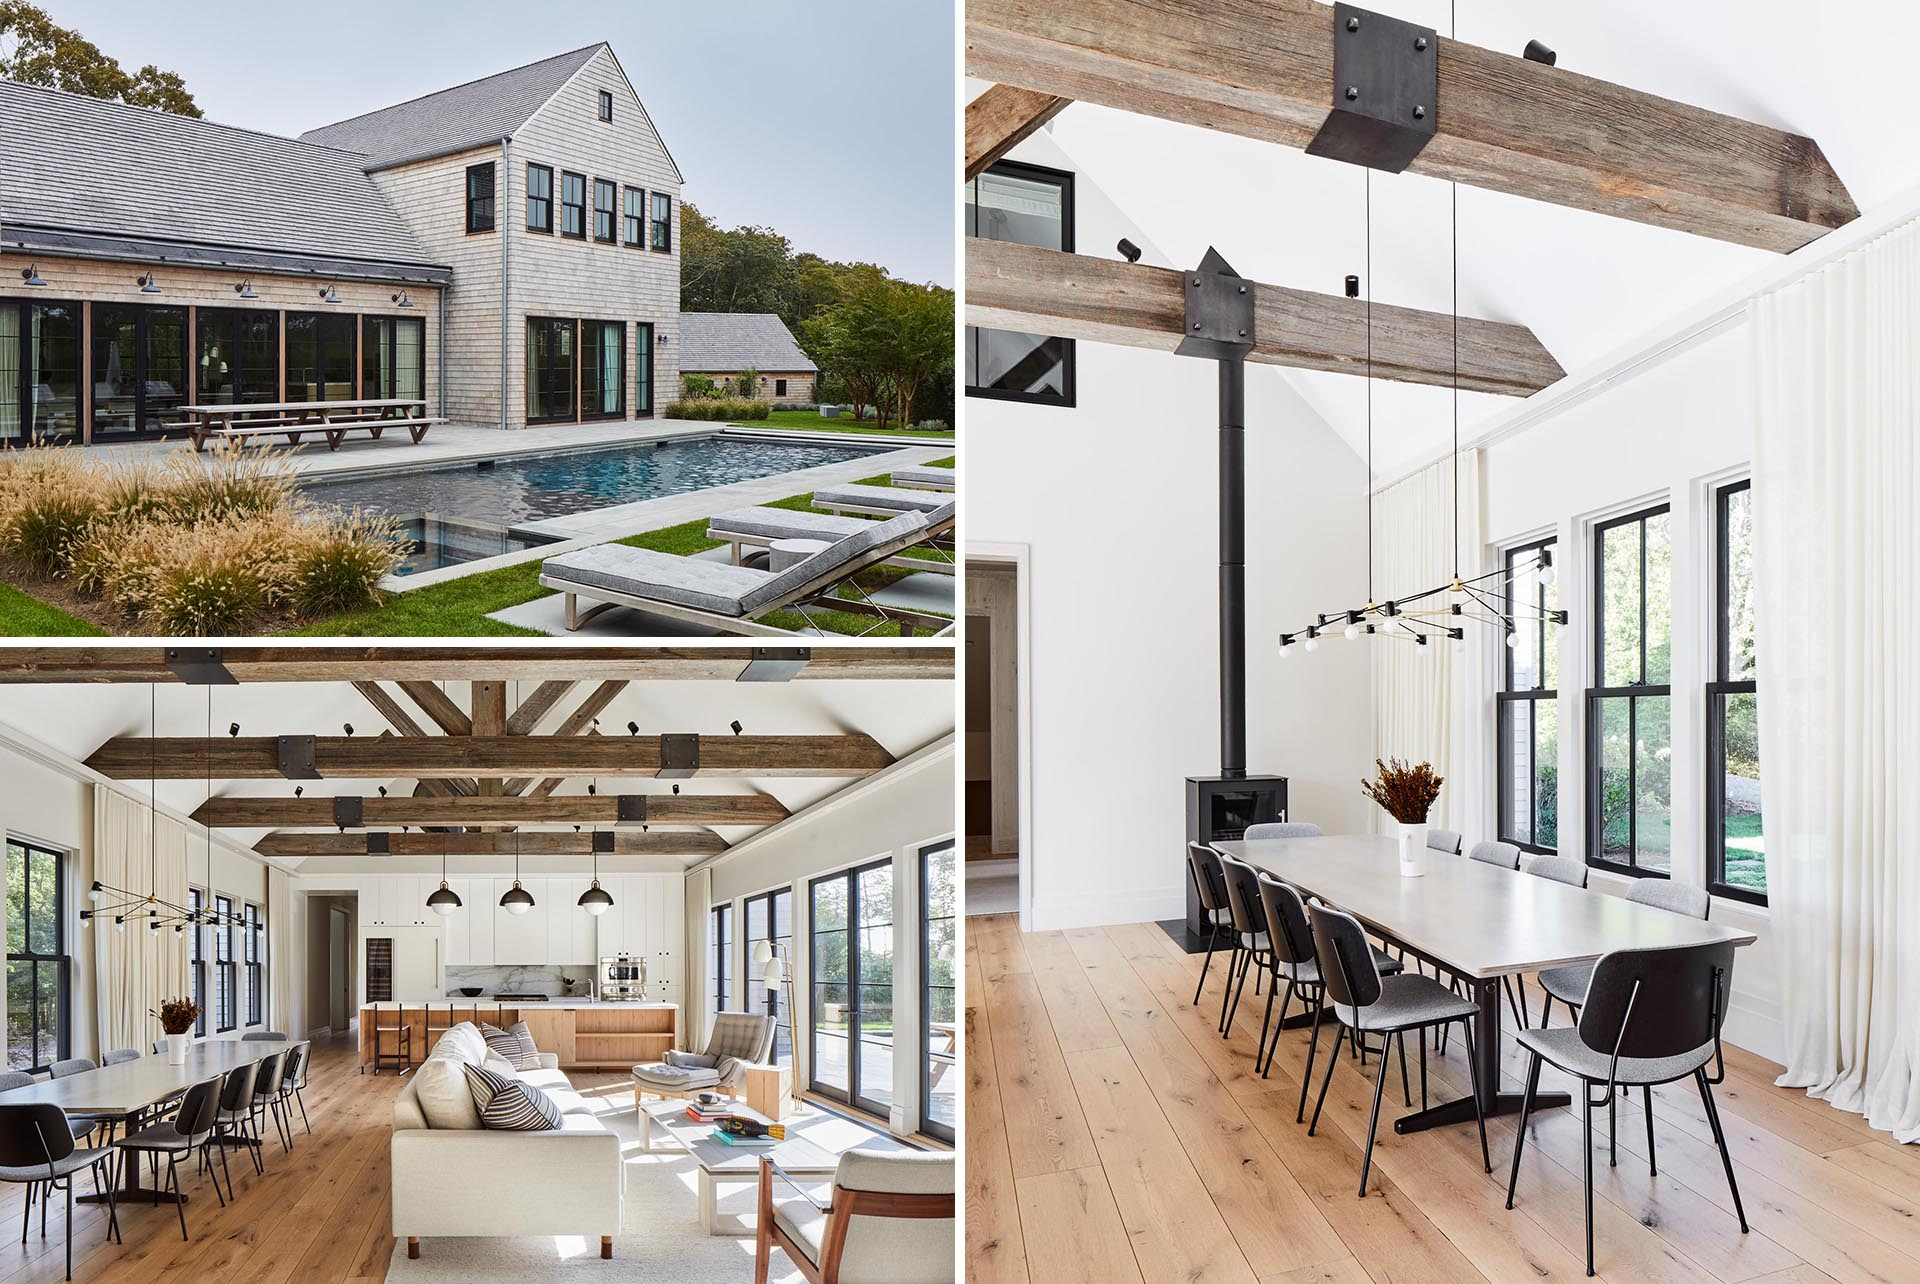 This modern farmhouse inspired home has a wood shingle exterior, and a great room with wood beams.